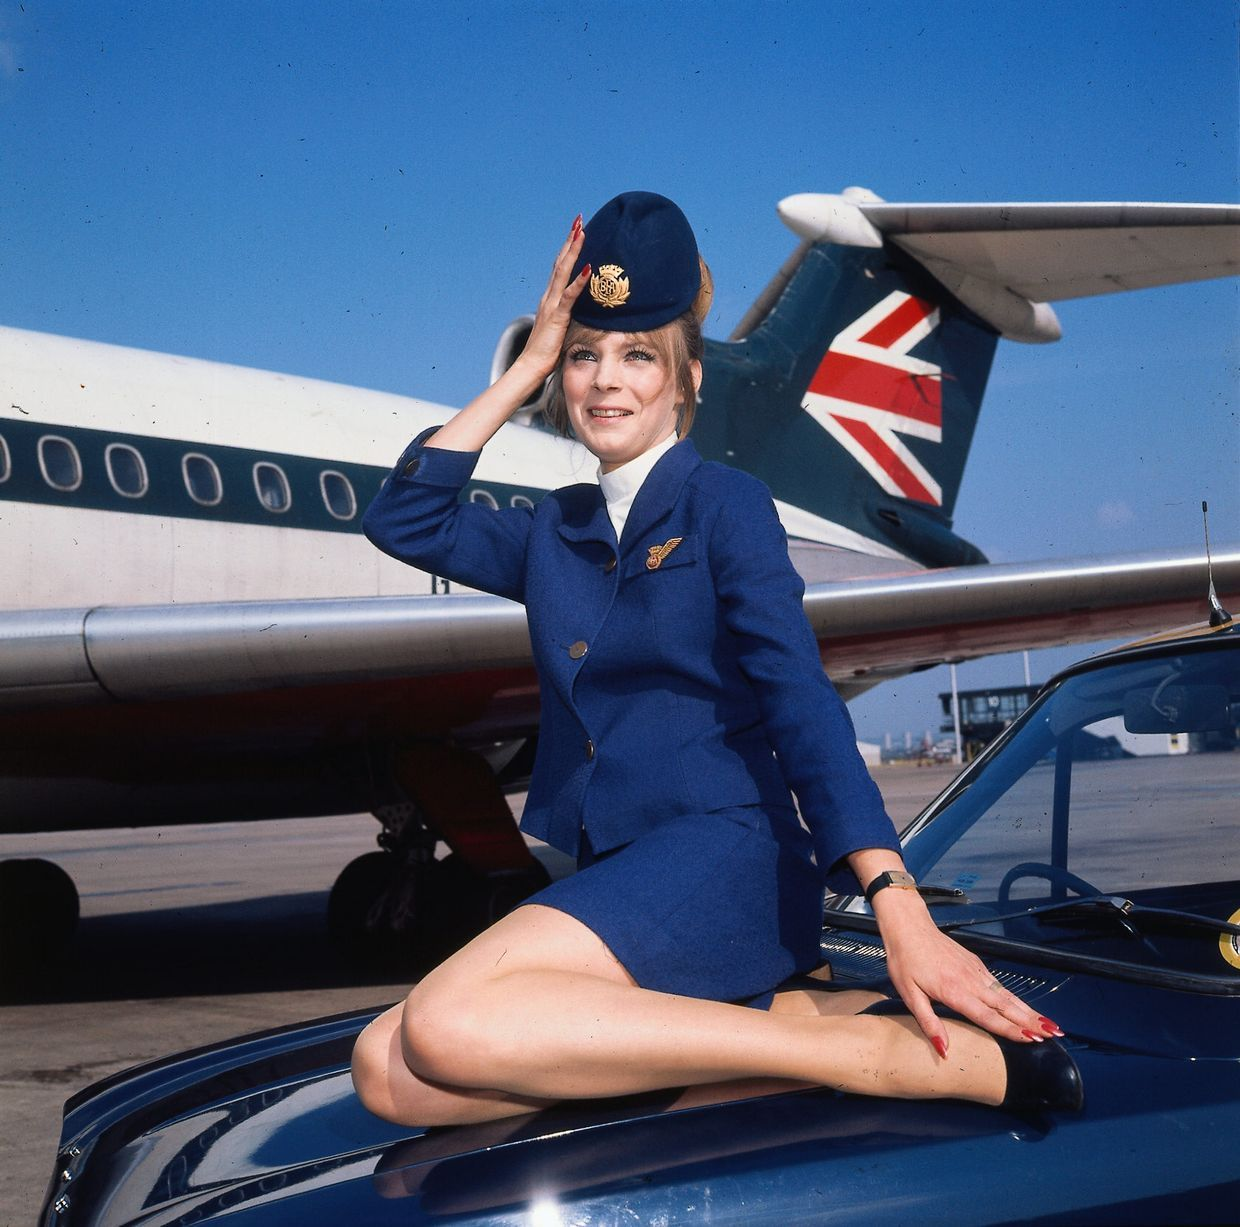 British Airways Flight Attendant Sample Resume Pictures 100 Years Of Commercial Airline Flight  British Airways .